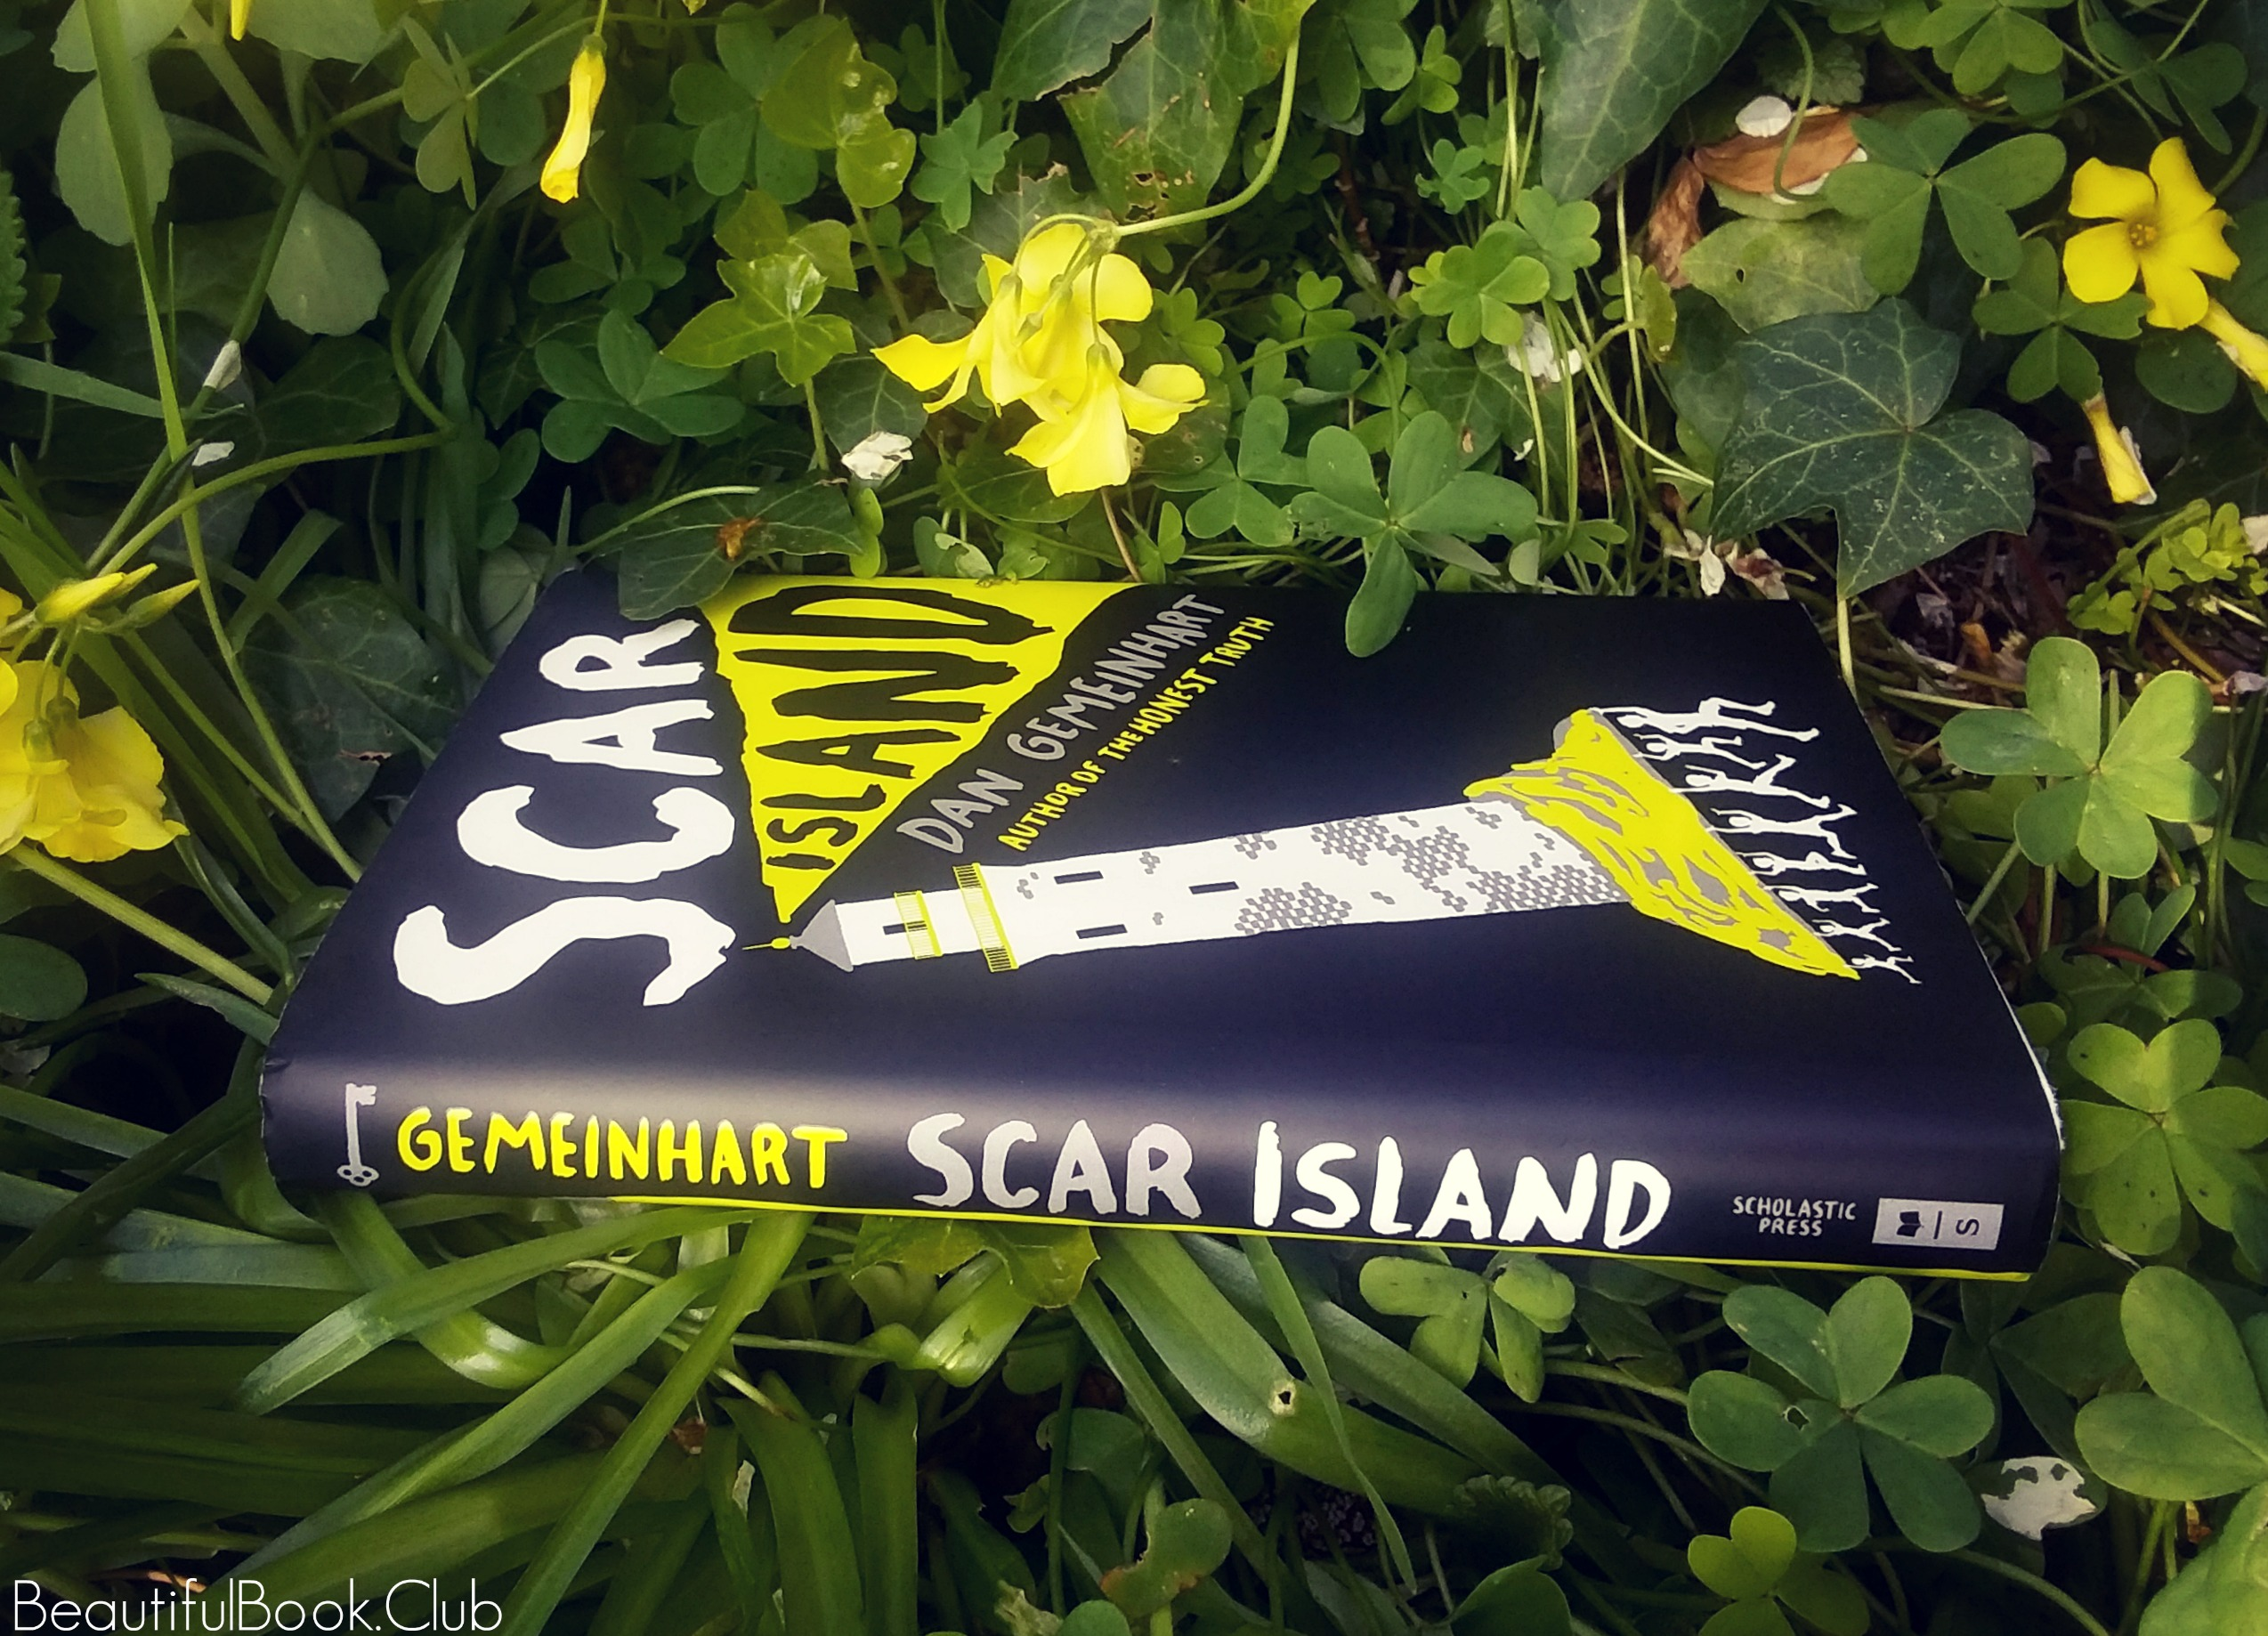 Scar Island by Dan Gemeinhart spine and front cover